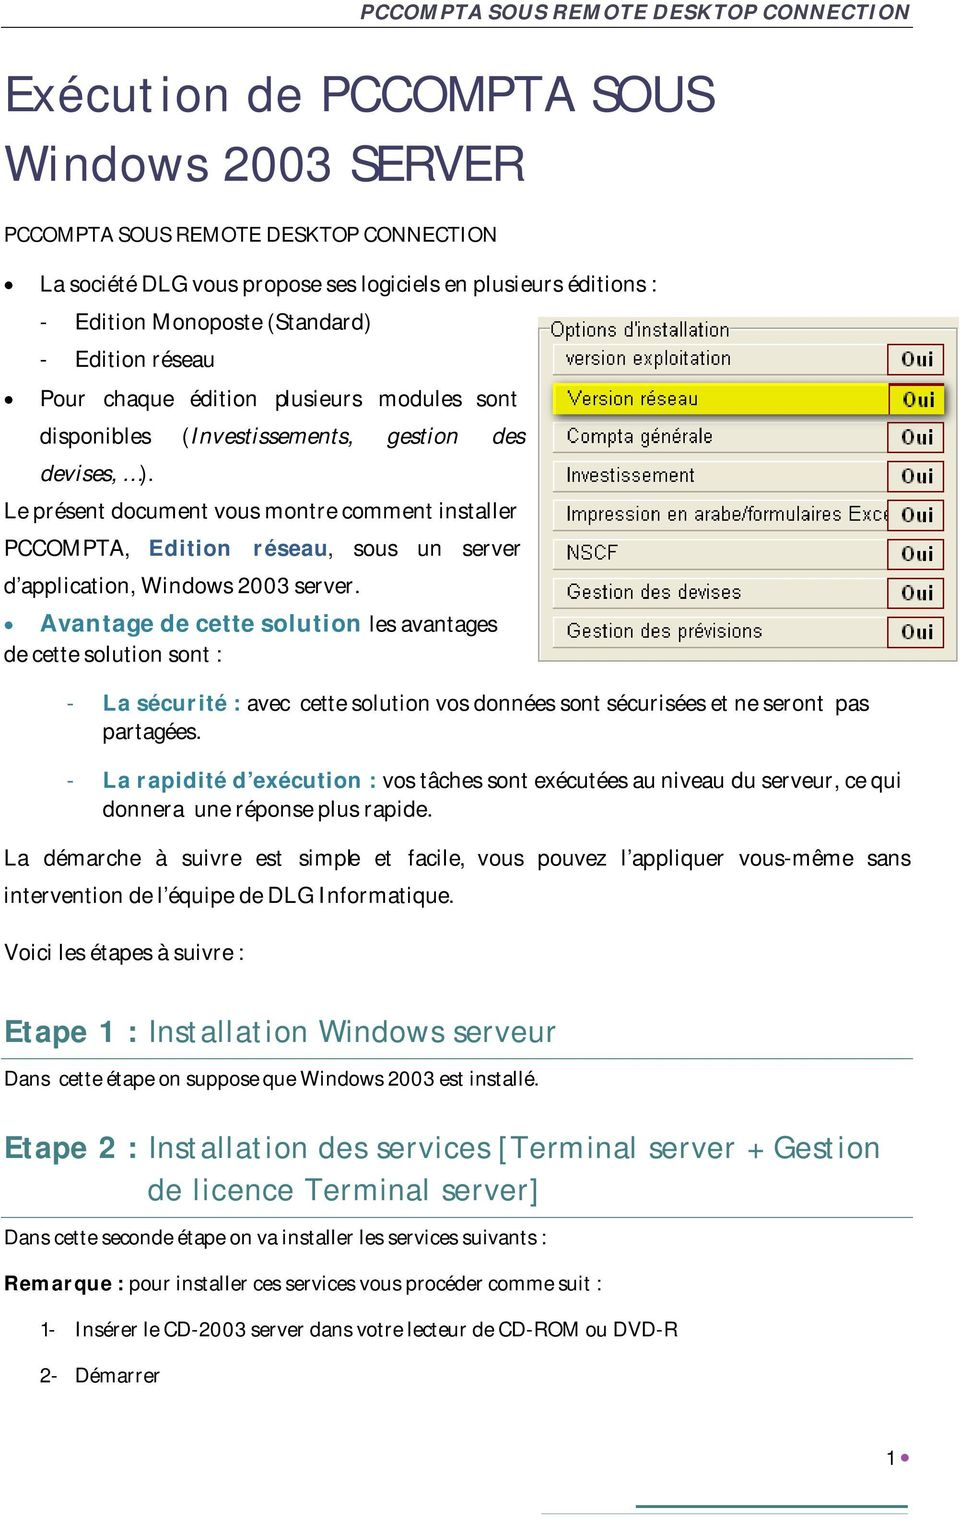 Le présent document vous montre comment installer PCCOMPTA, Edition réseau, sous un server d application, Windows 2003 server.